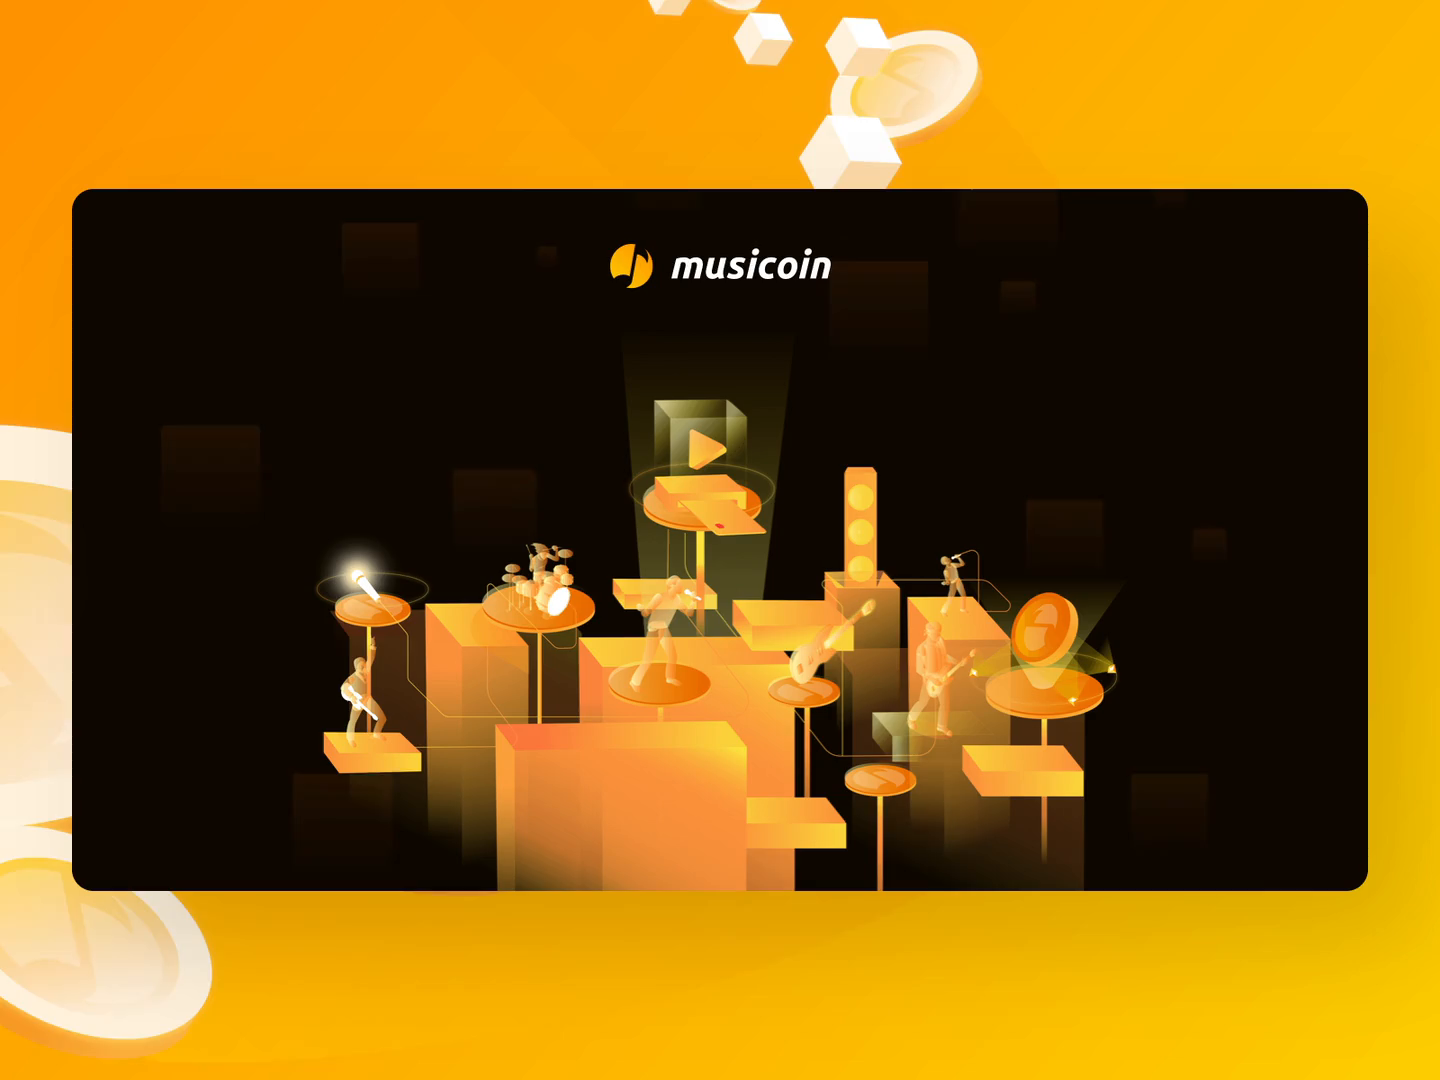 Musicoin sign up